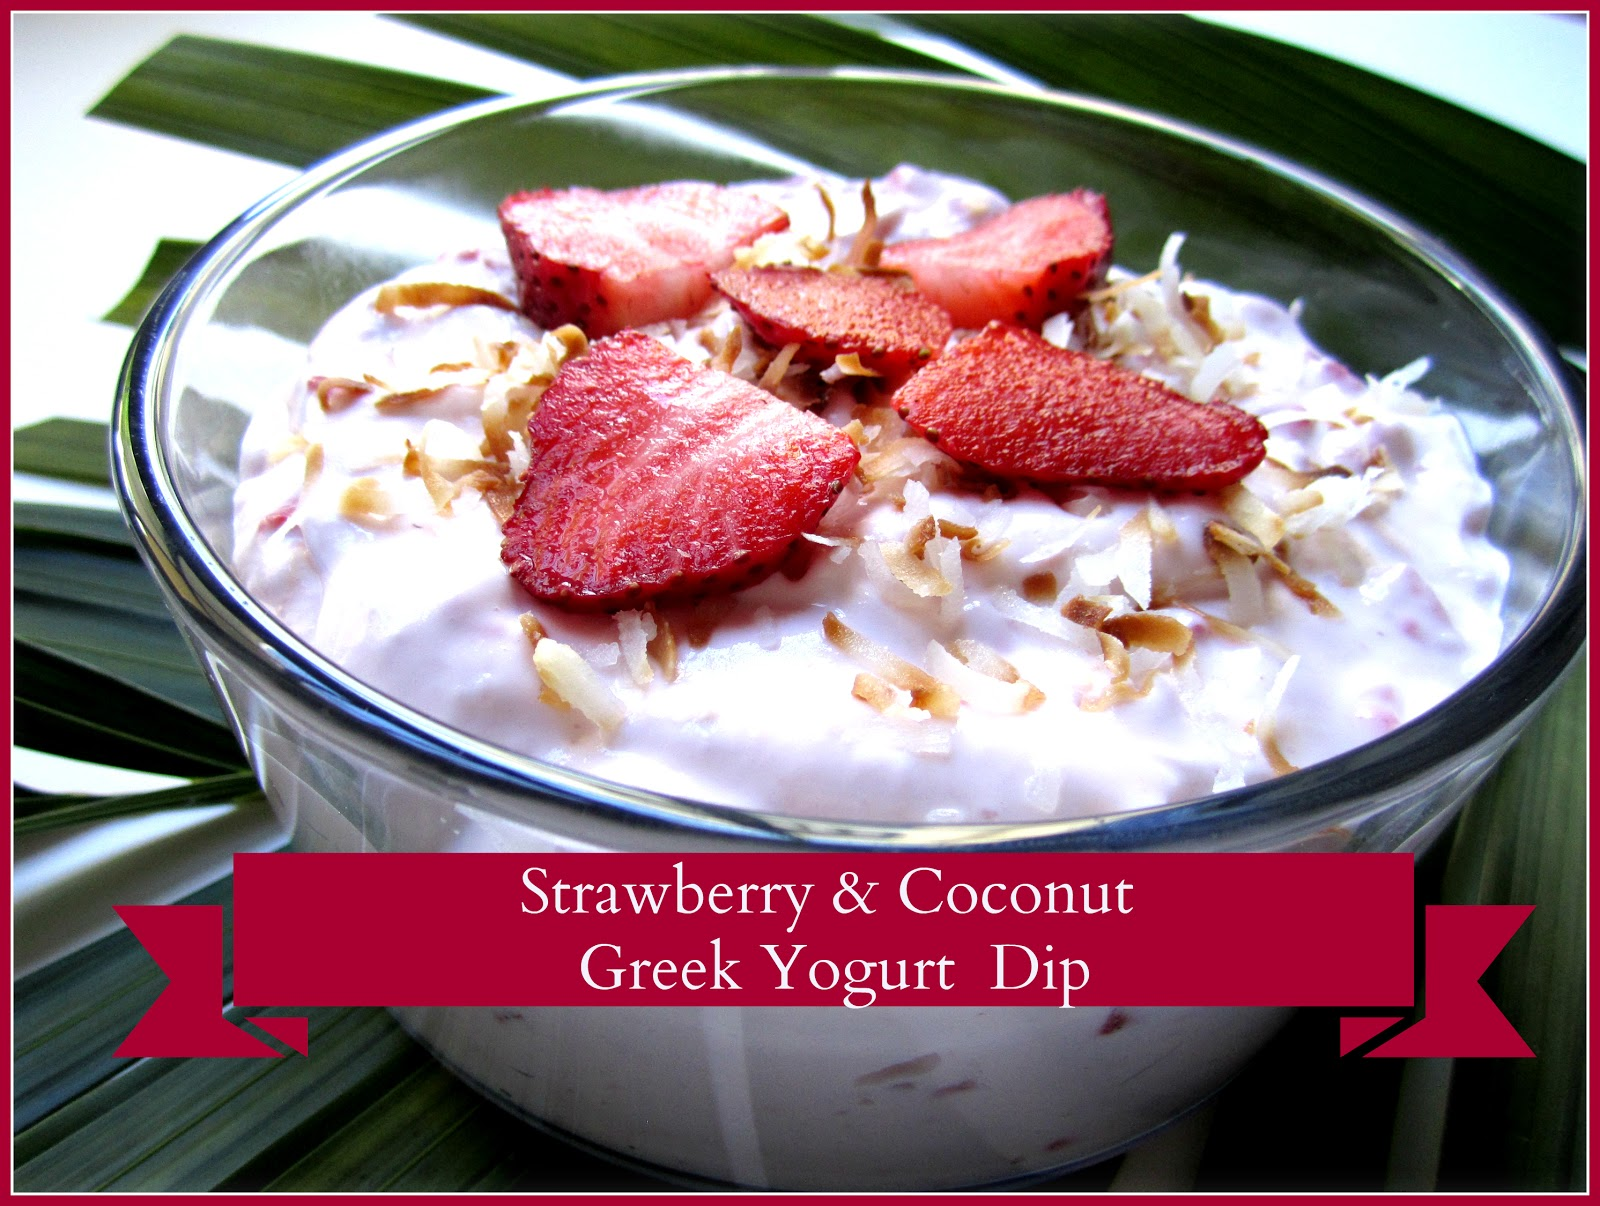 Strawberry & Coconut Greek Yogurt Dip- The Pink Veranda